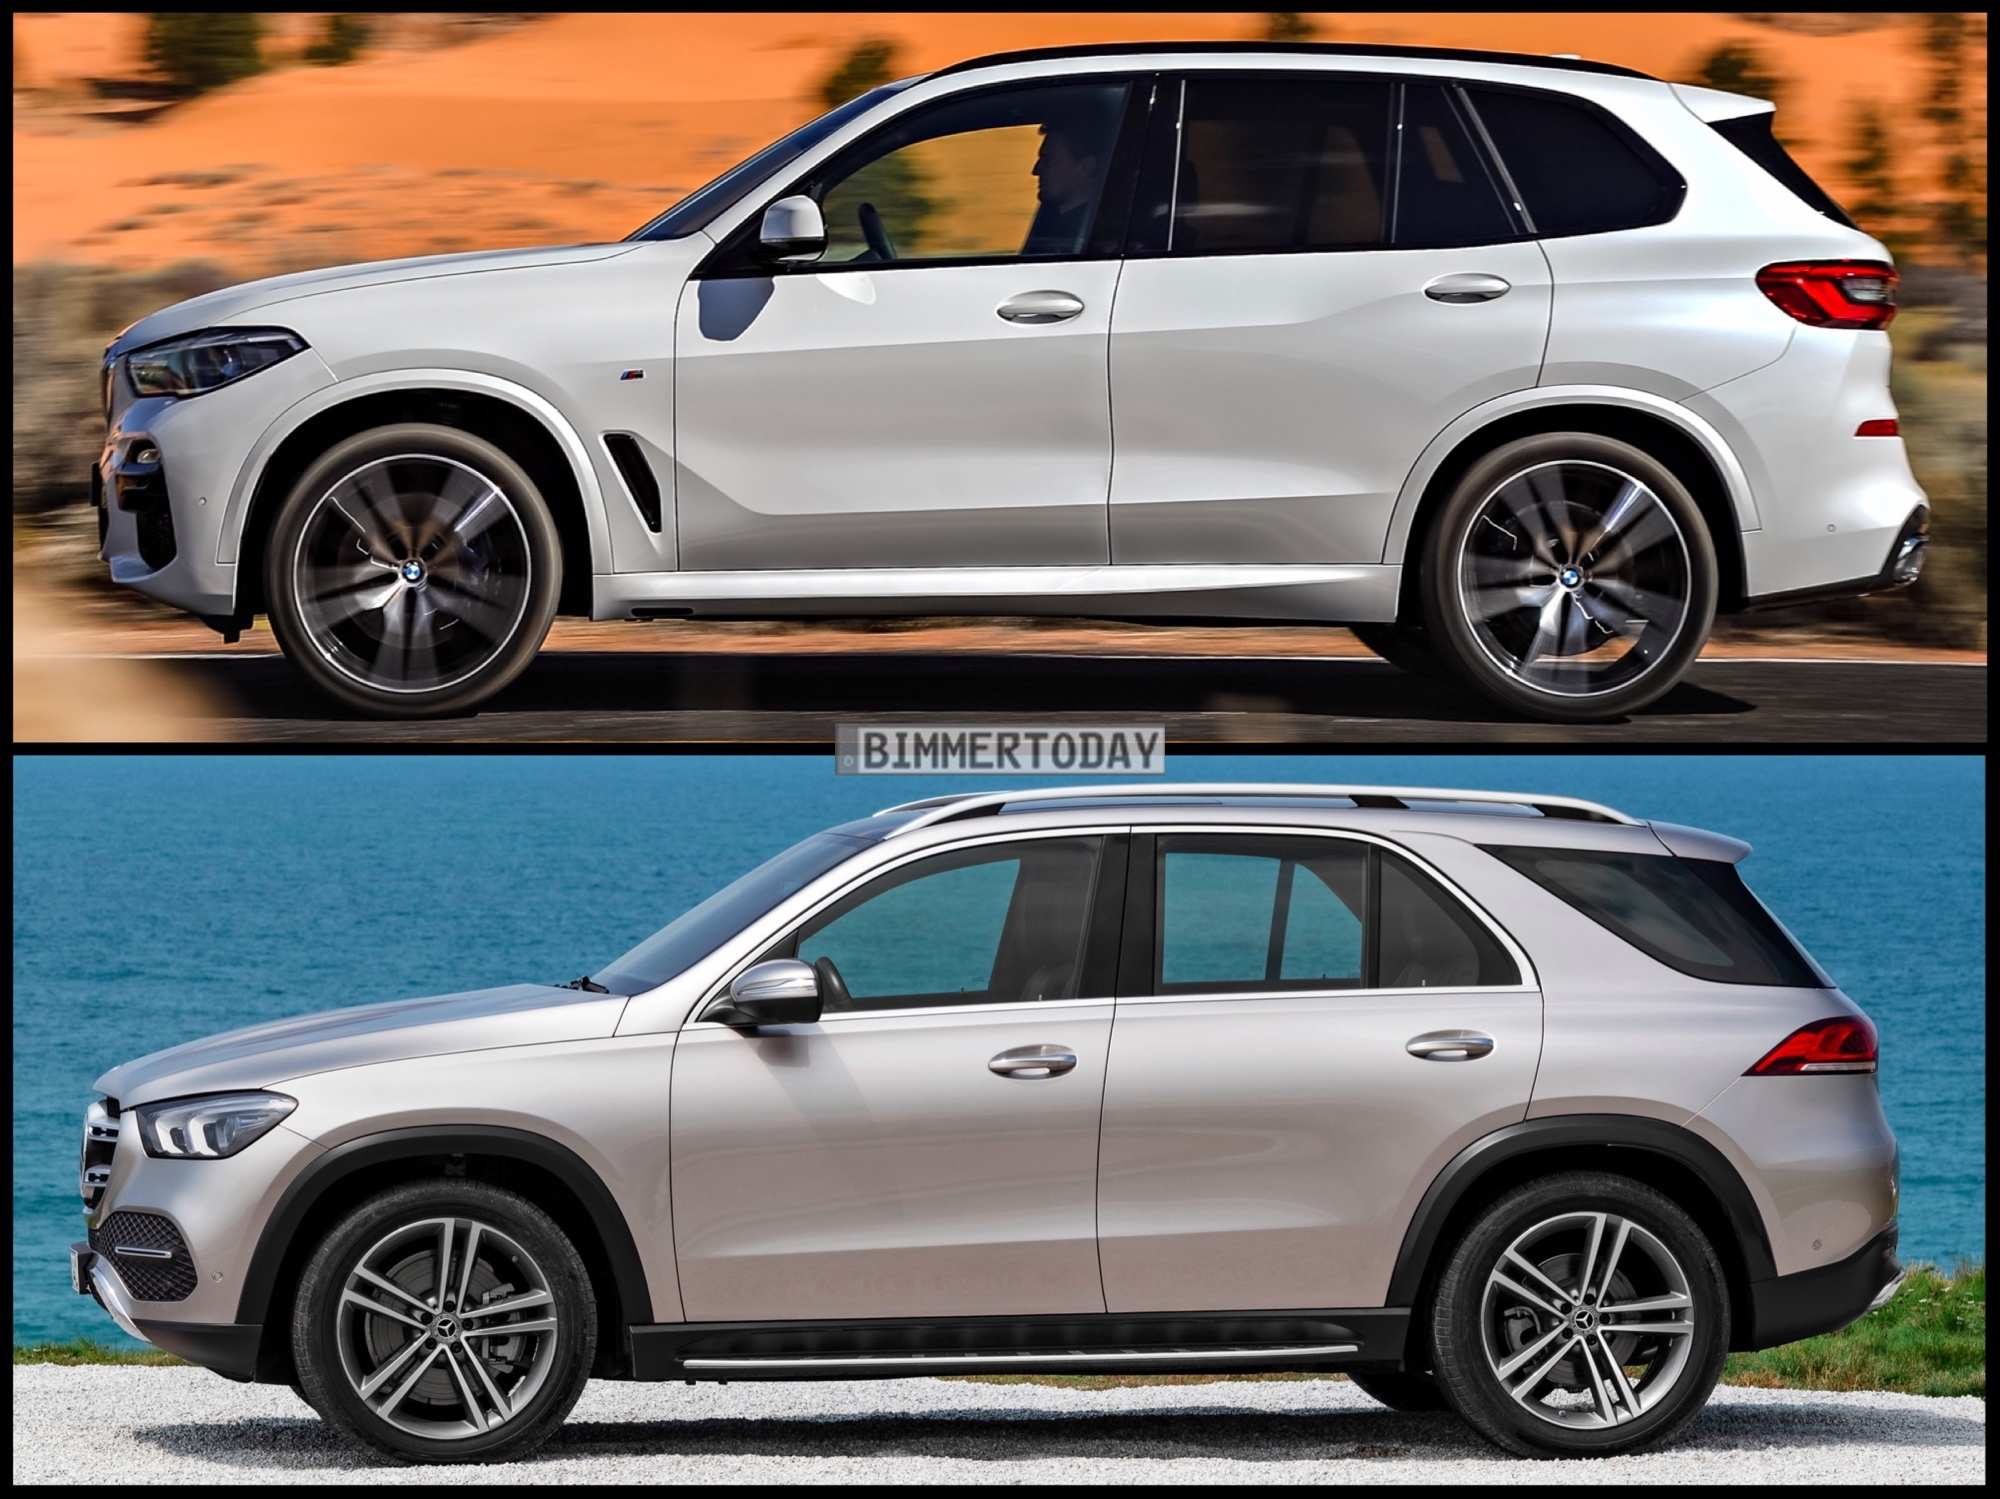 69 Great 2020 Mercedes Gle Vs BMW X5 Redesign and Concept with 2020 Mercedes Gle Vs BMW X5